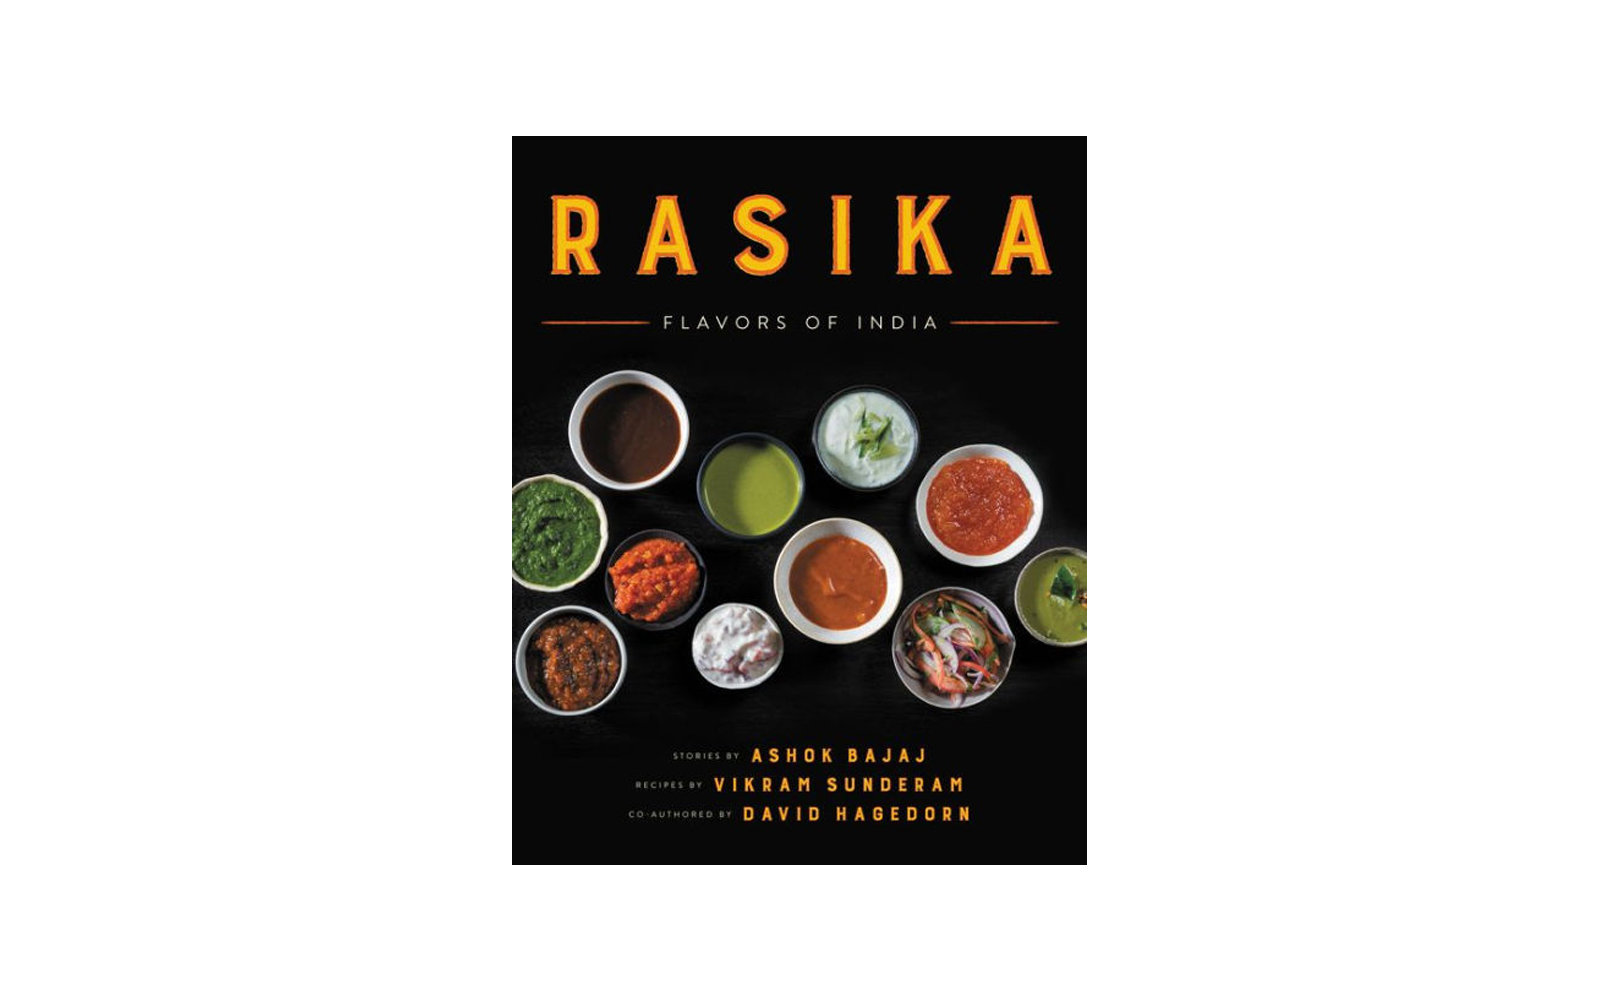 Rasika Flavors of India, by Ashok Bajaj, Vikram Sunderam, and David Hagedorn